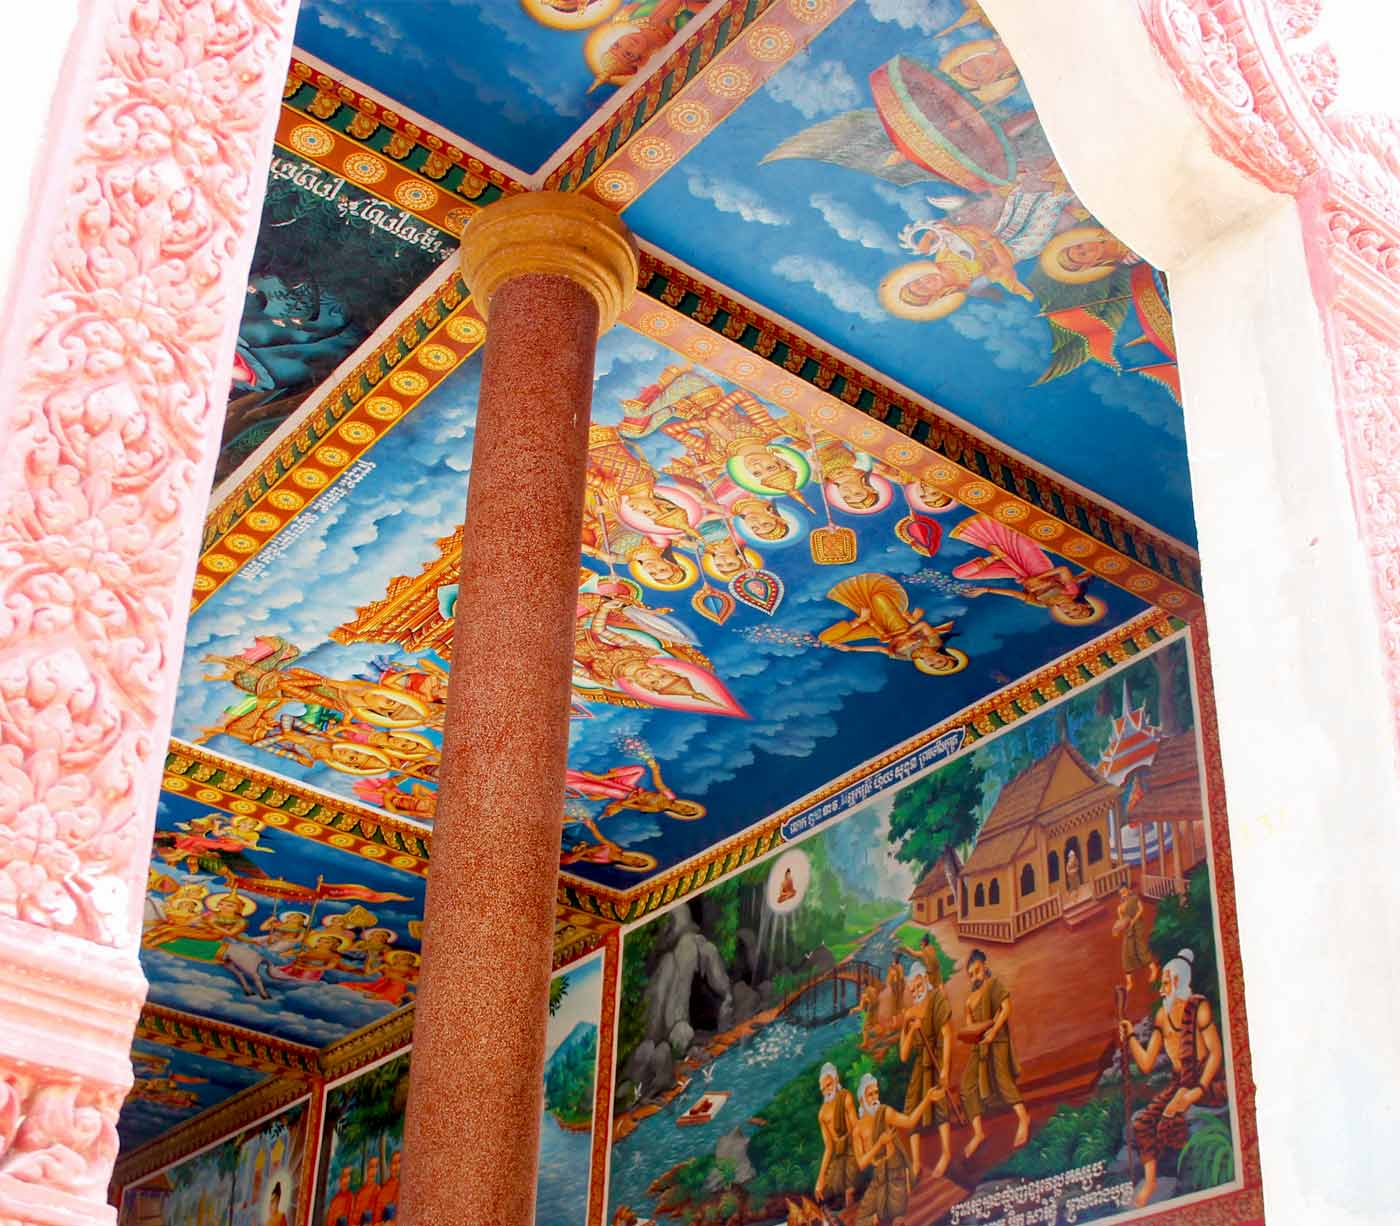 Pagoda Siem Reap - colorful wall painting